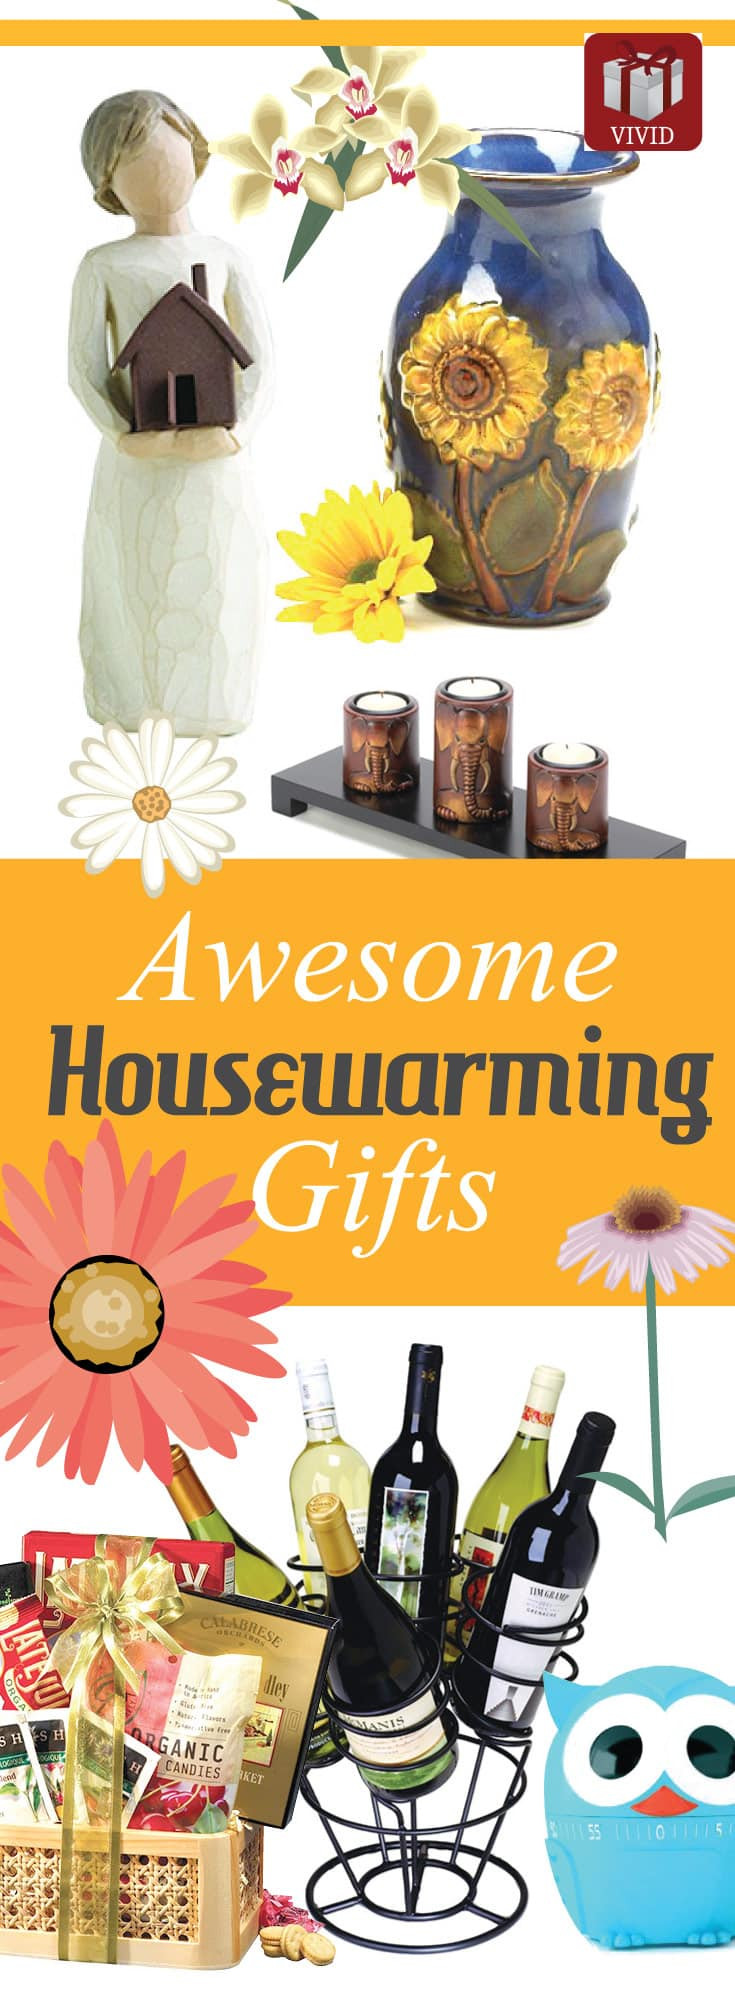 Best ideas about Good Housewarming Gift Ideas . Save or Pin Inexpensive Housewarming Gifts under $25 Vivid s Now.